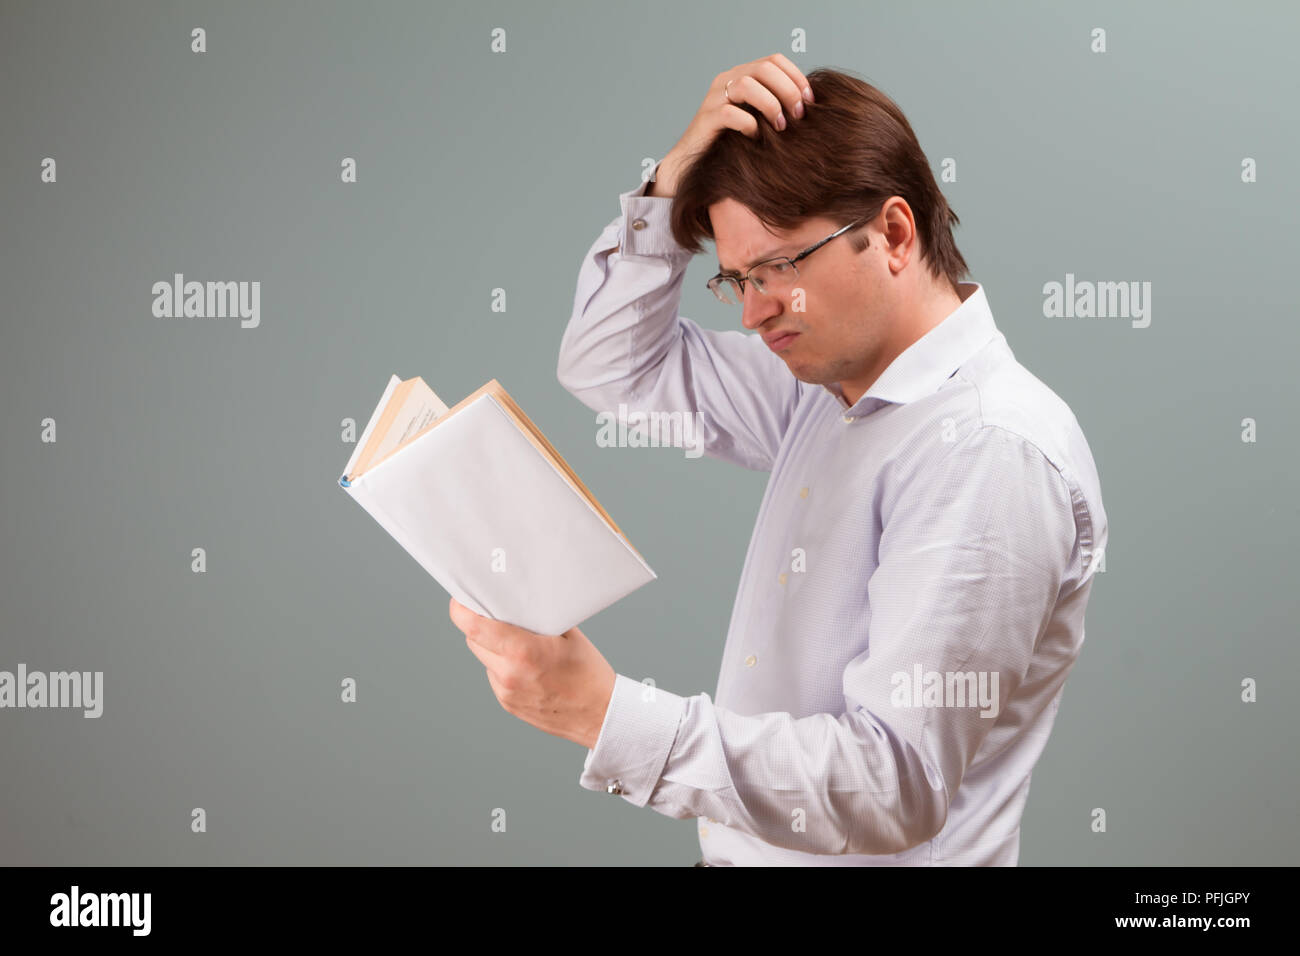 A young man, focused on reading a book in white cover, with confused emotion on the face, scratches his head; horizontal orientation studio portrait. - Stock Image